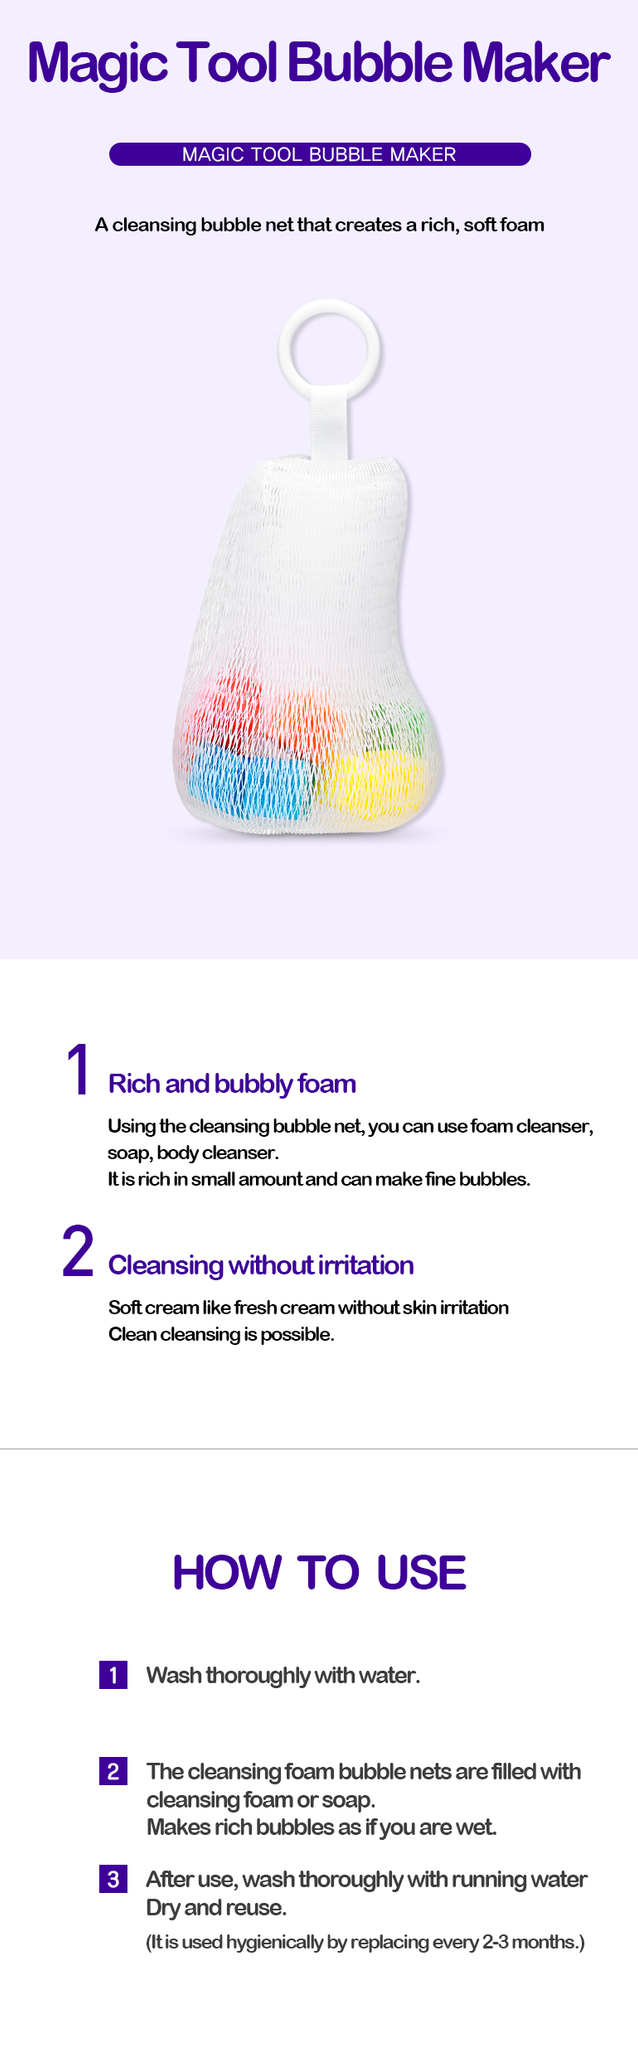 Bubble Foam Maker | Magic Tool Cleansing Bubble Maker